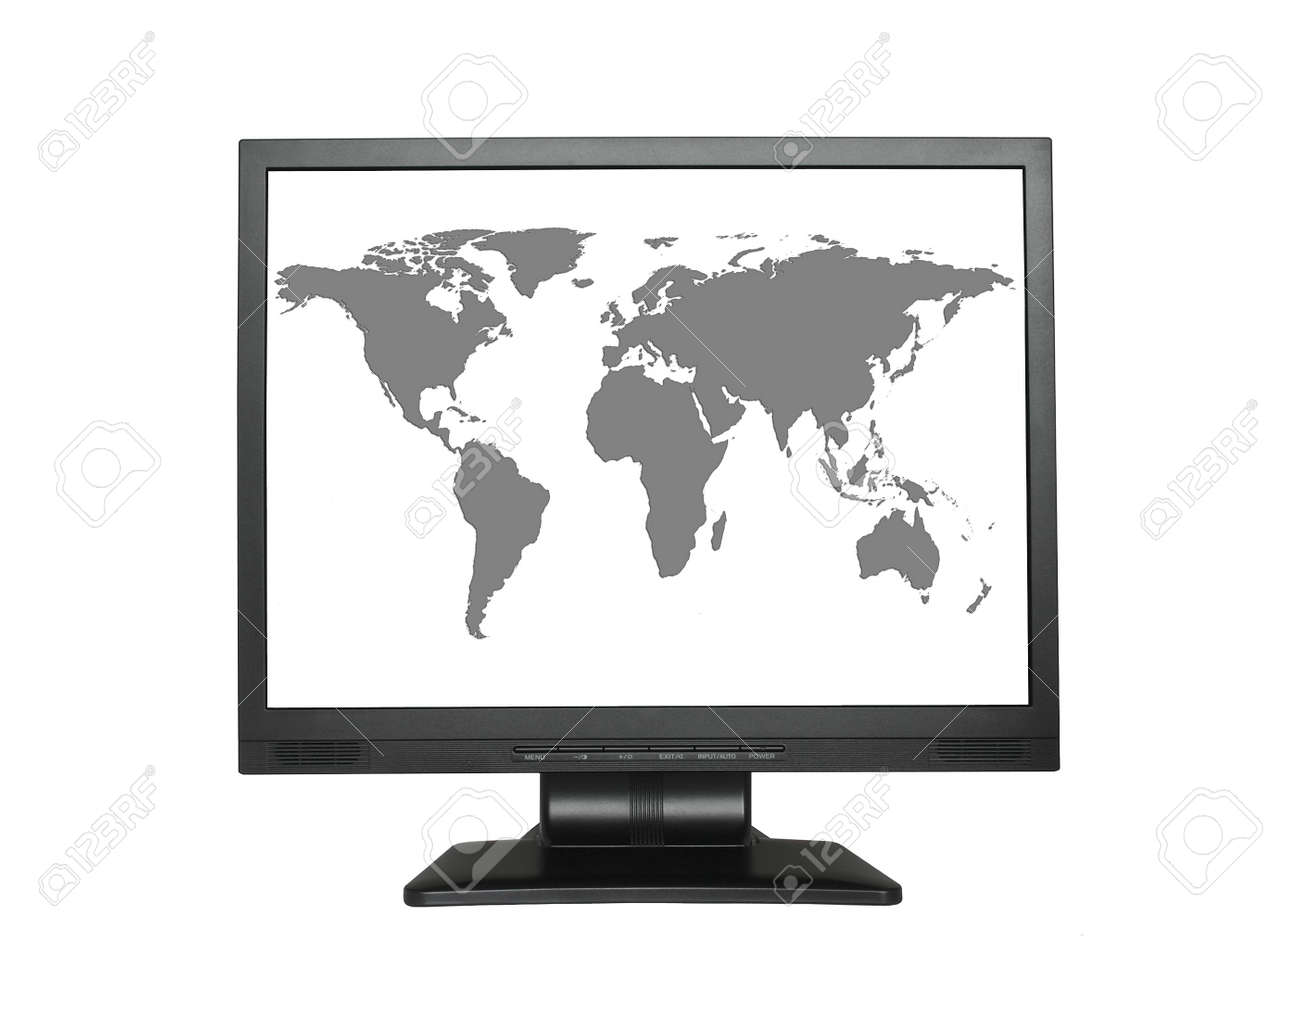 World map in wide lcd screen no copyright infringement stock photo stock photo world map in wide lcd screen no copyright infringement gumiabroncs Choice Image